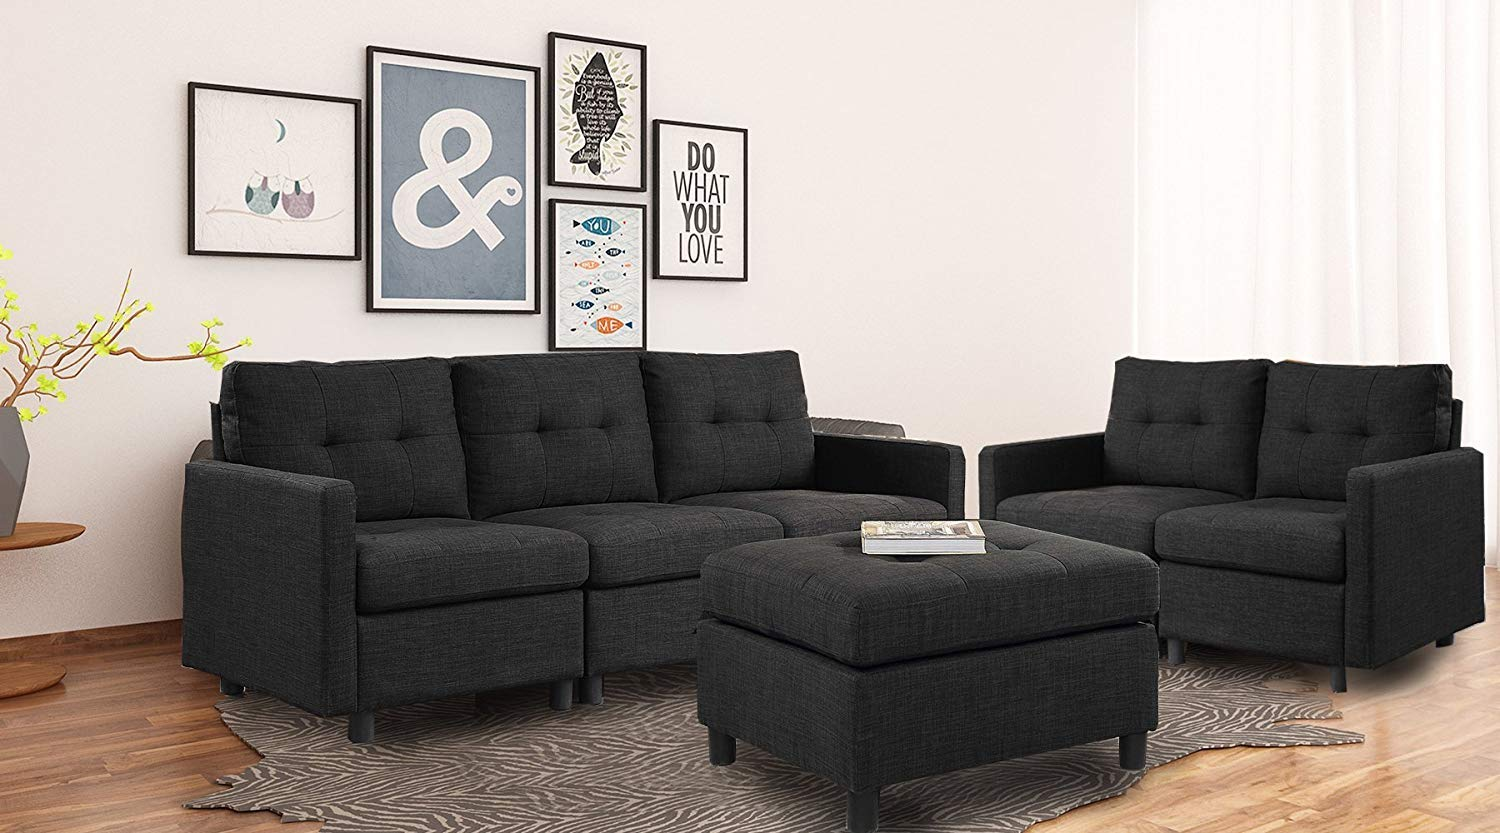 Cheap Left Sectional Sofas Find Left Sectional Sofas Deals